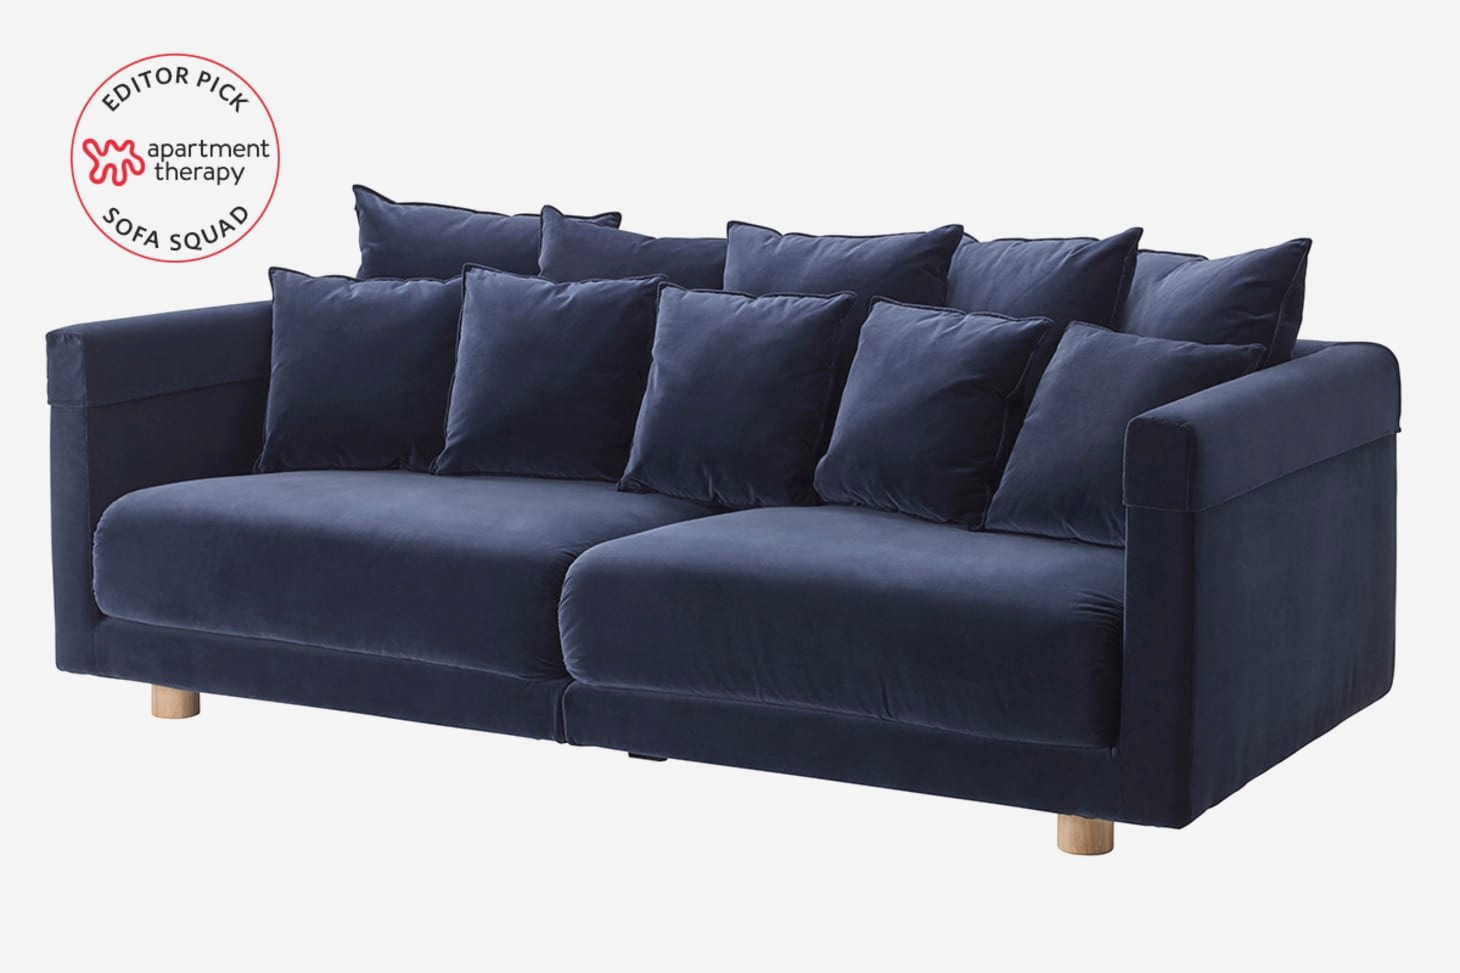 Comfortable Apartment Sofa Wanchope pertaining to dimensions 1460 X 973